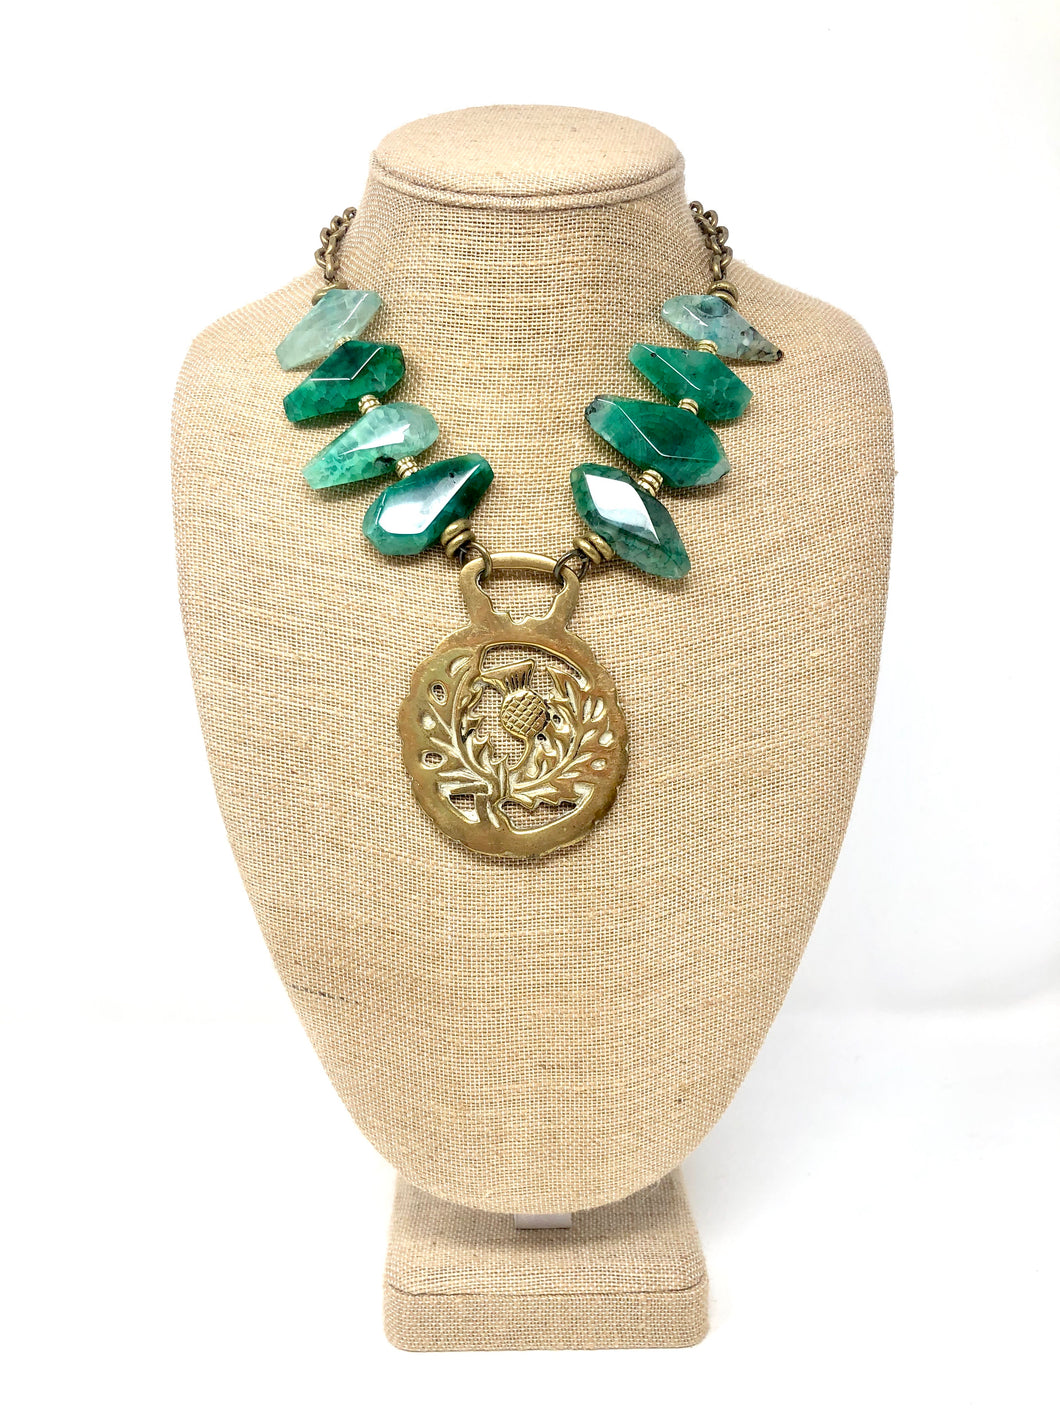 Horsebrass Necklace-Green